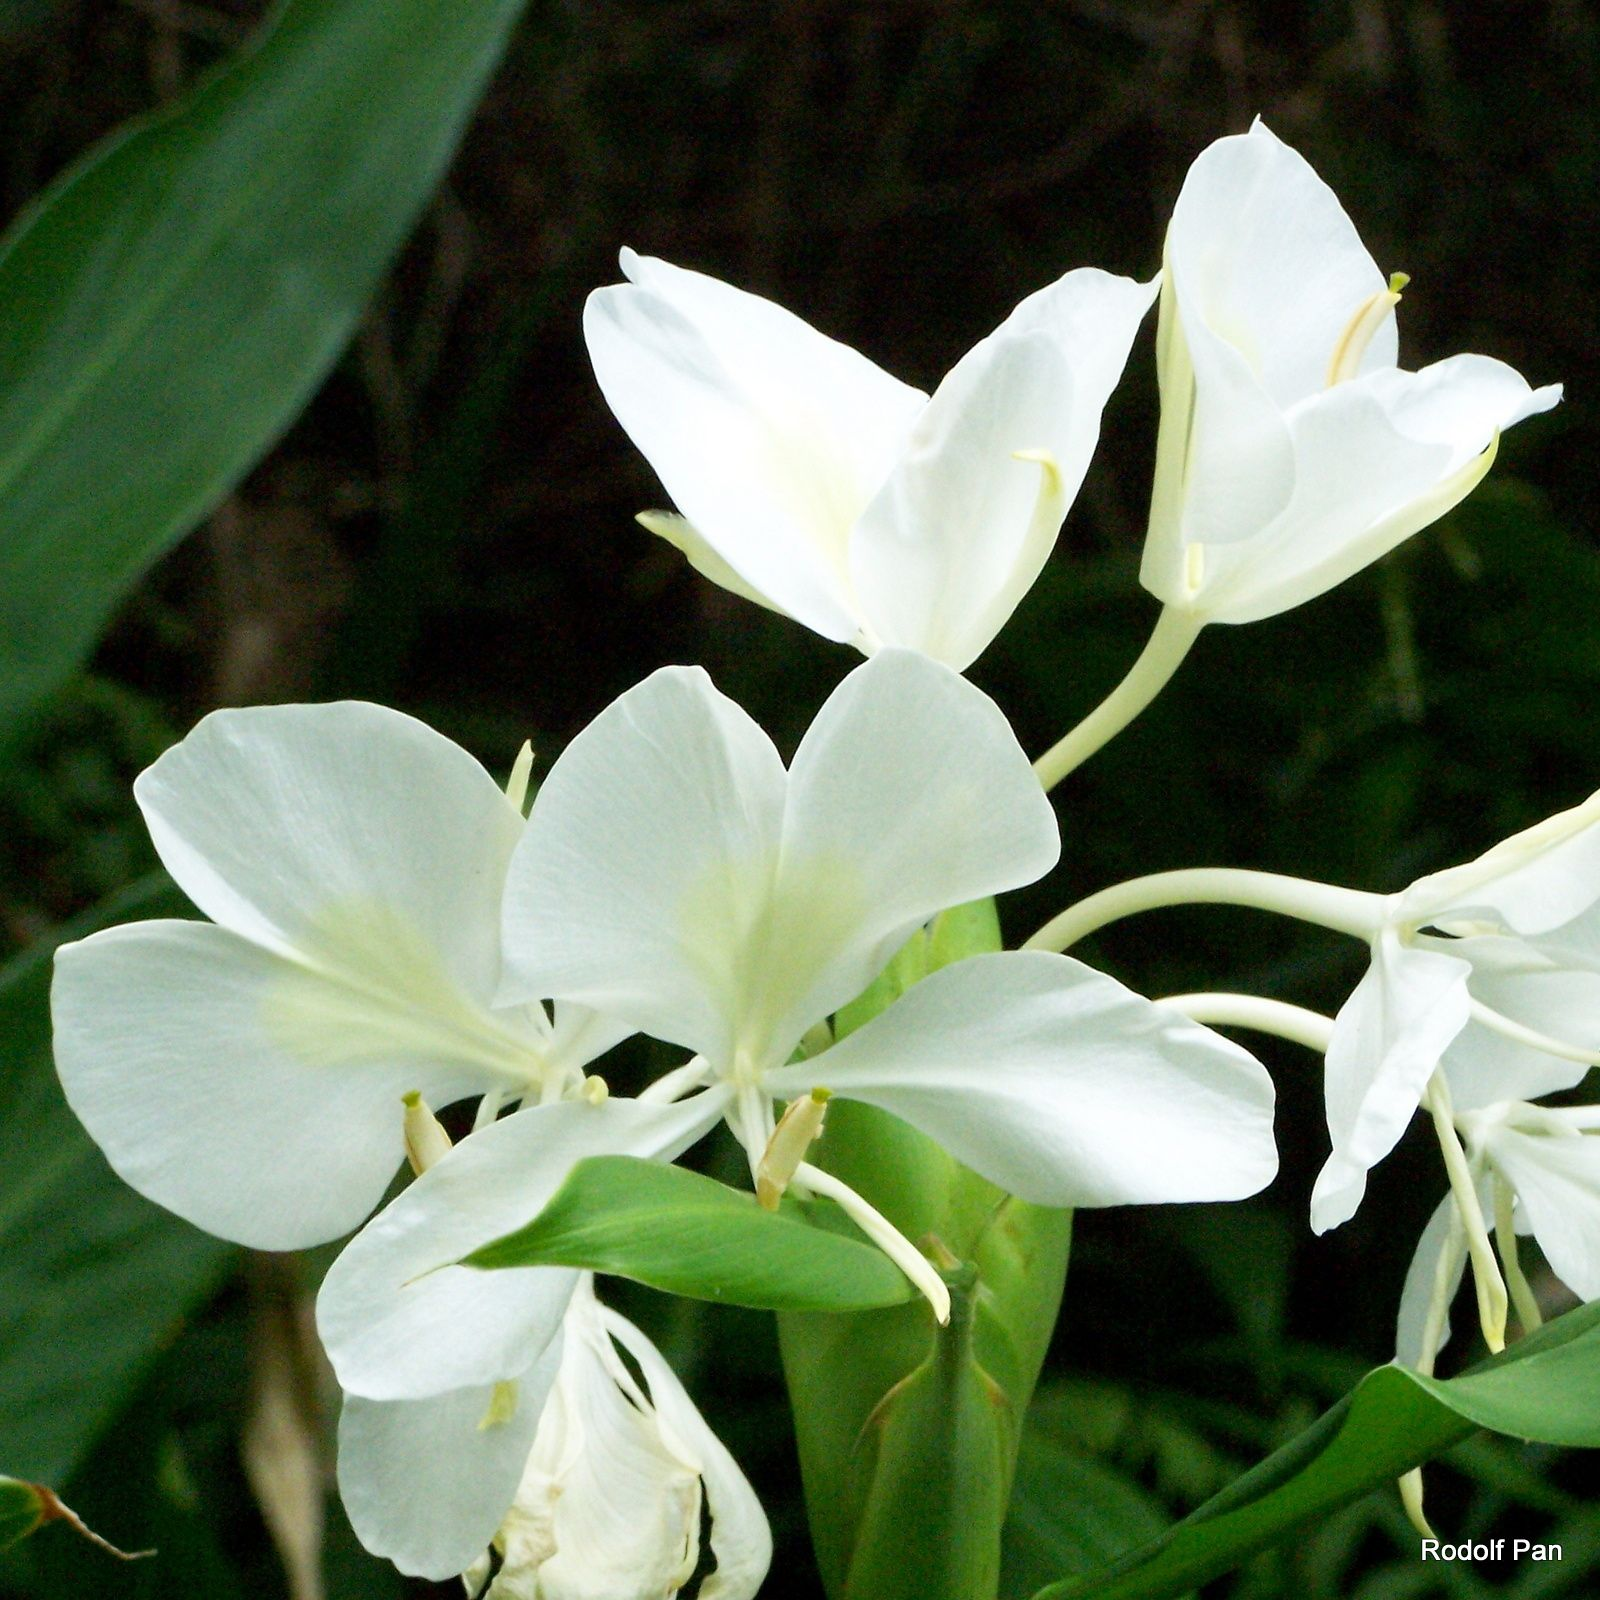 White Ginger Flowers In The Rainforests Of The Koolau Mountains